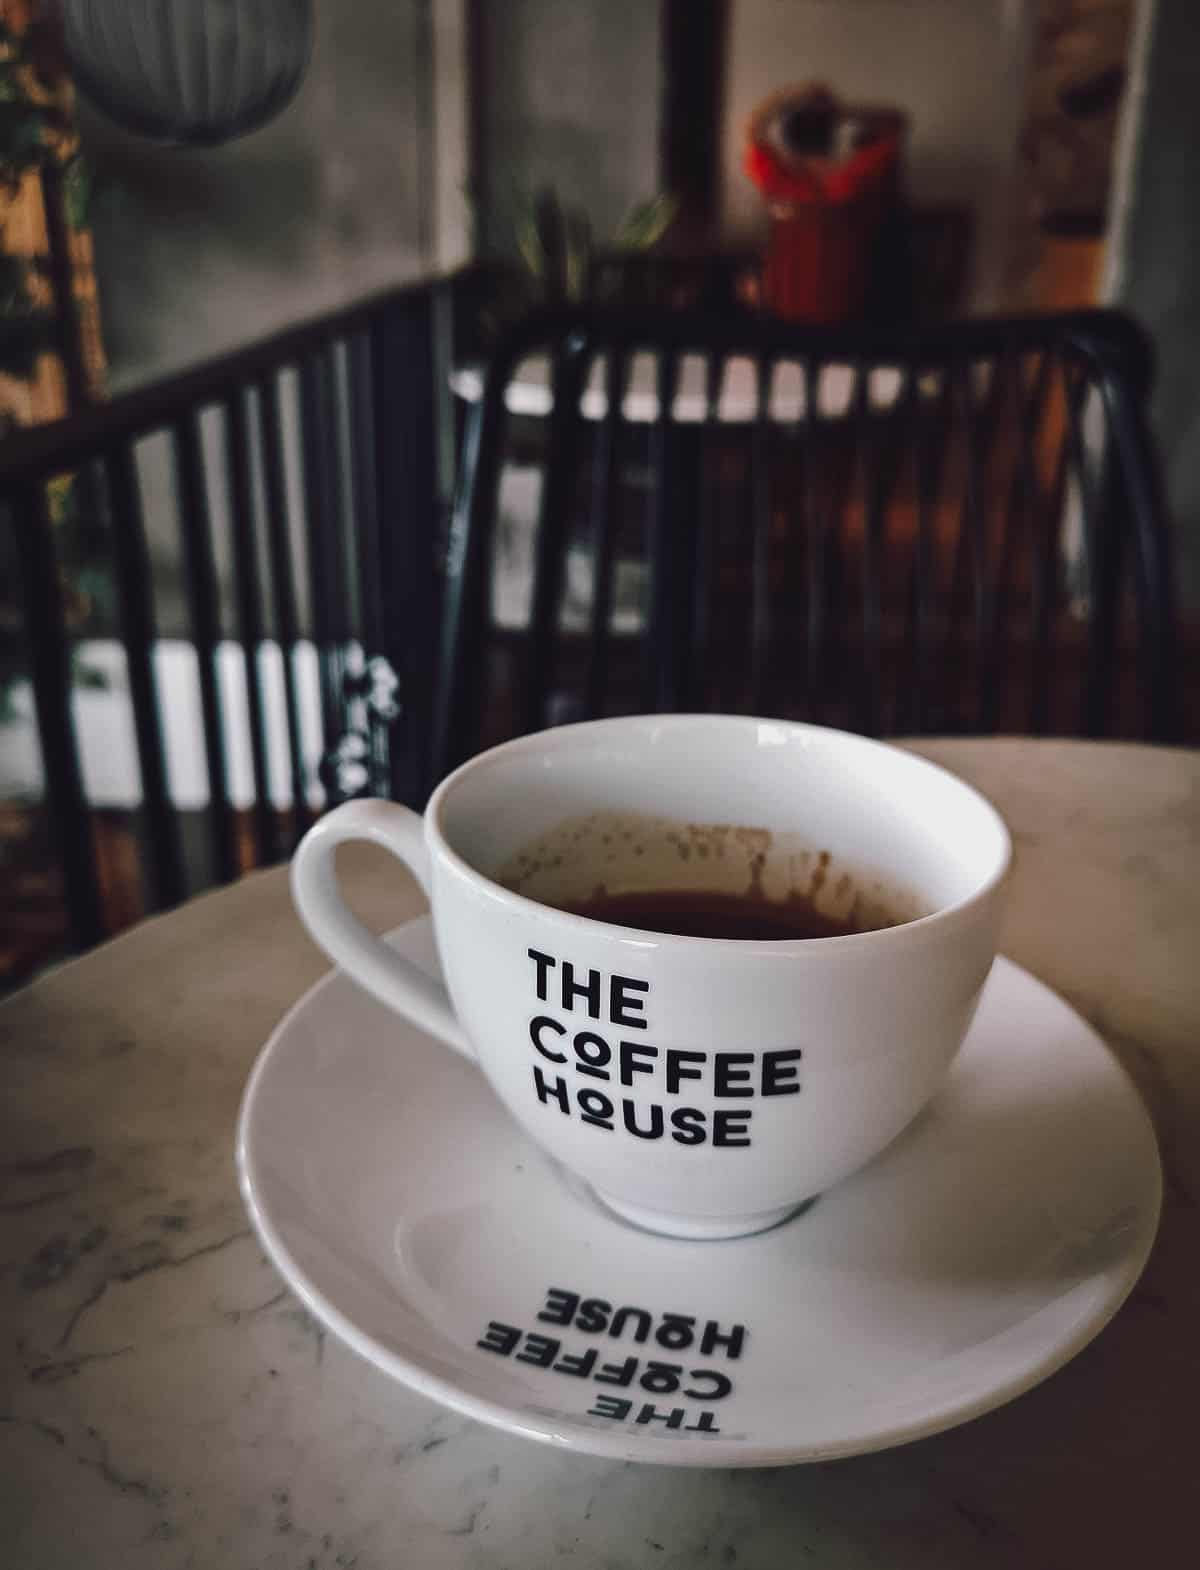 Black coffee at The Coffee House